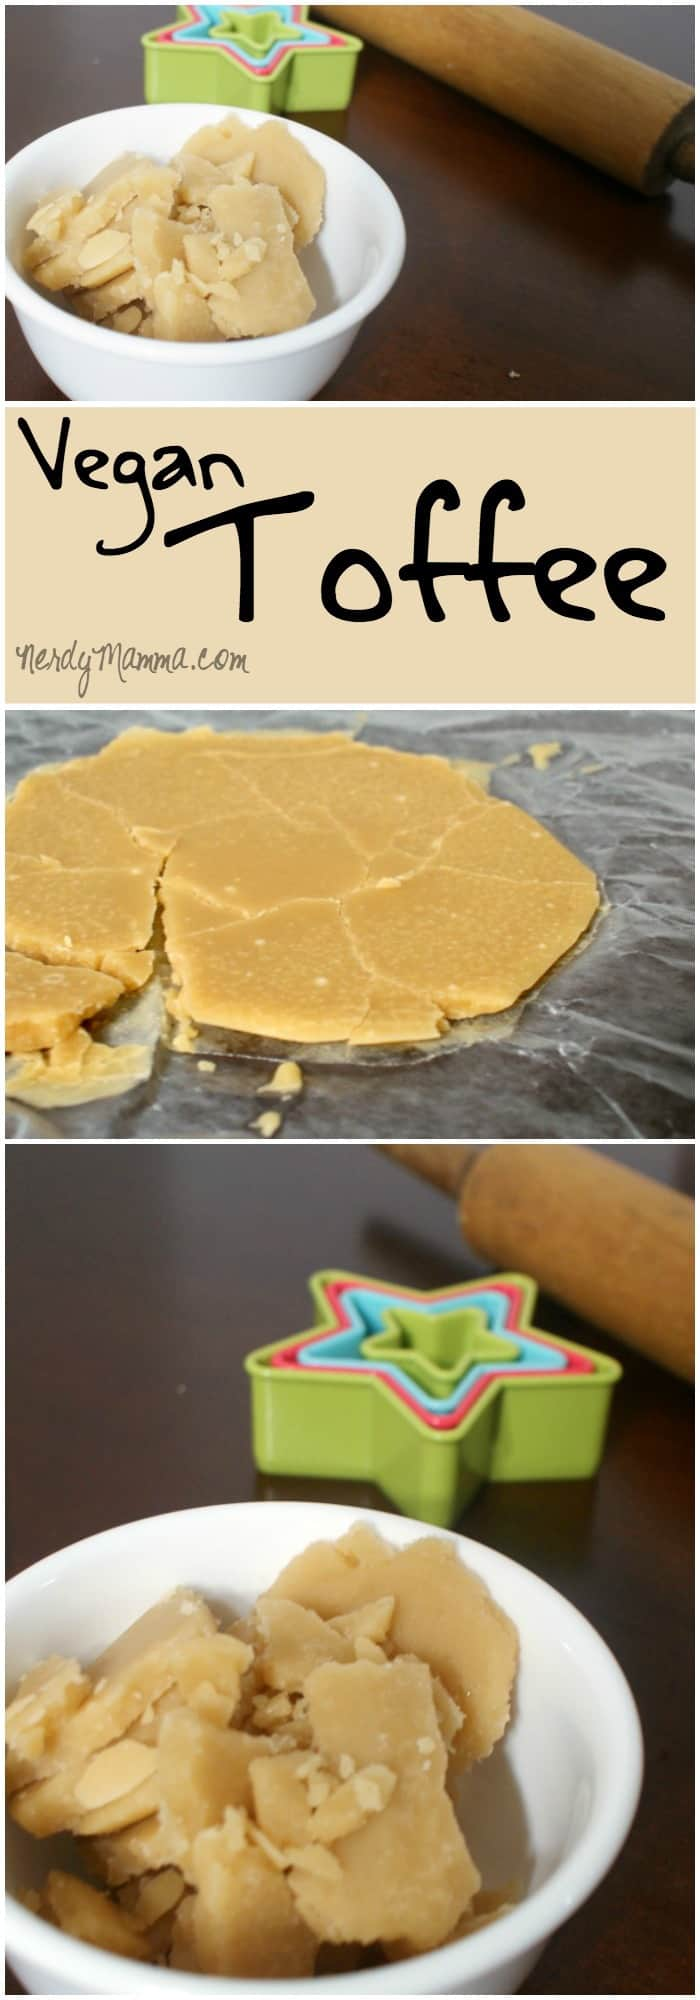 This recipe for eggless, dairy-free toffee is so easy. I can't believe I'd never made vegan toffee before! LOL!